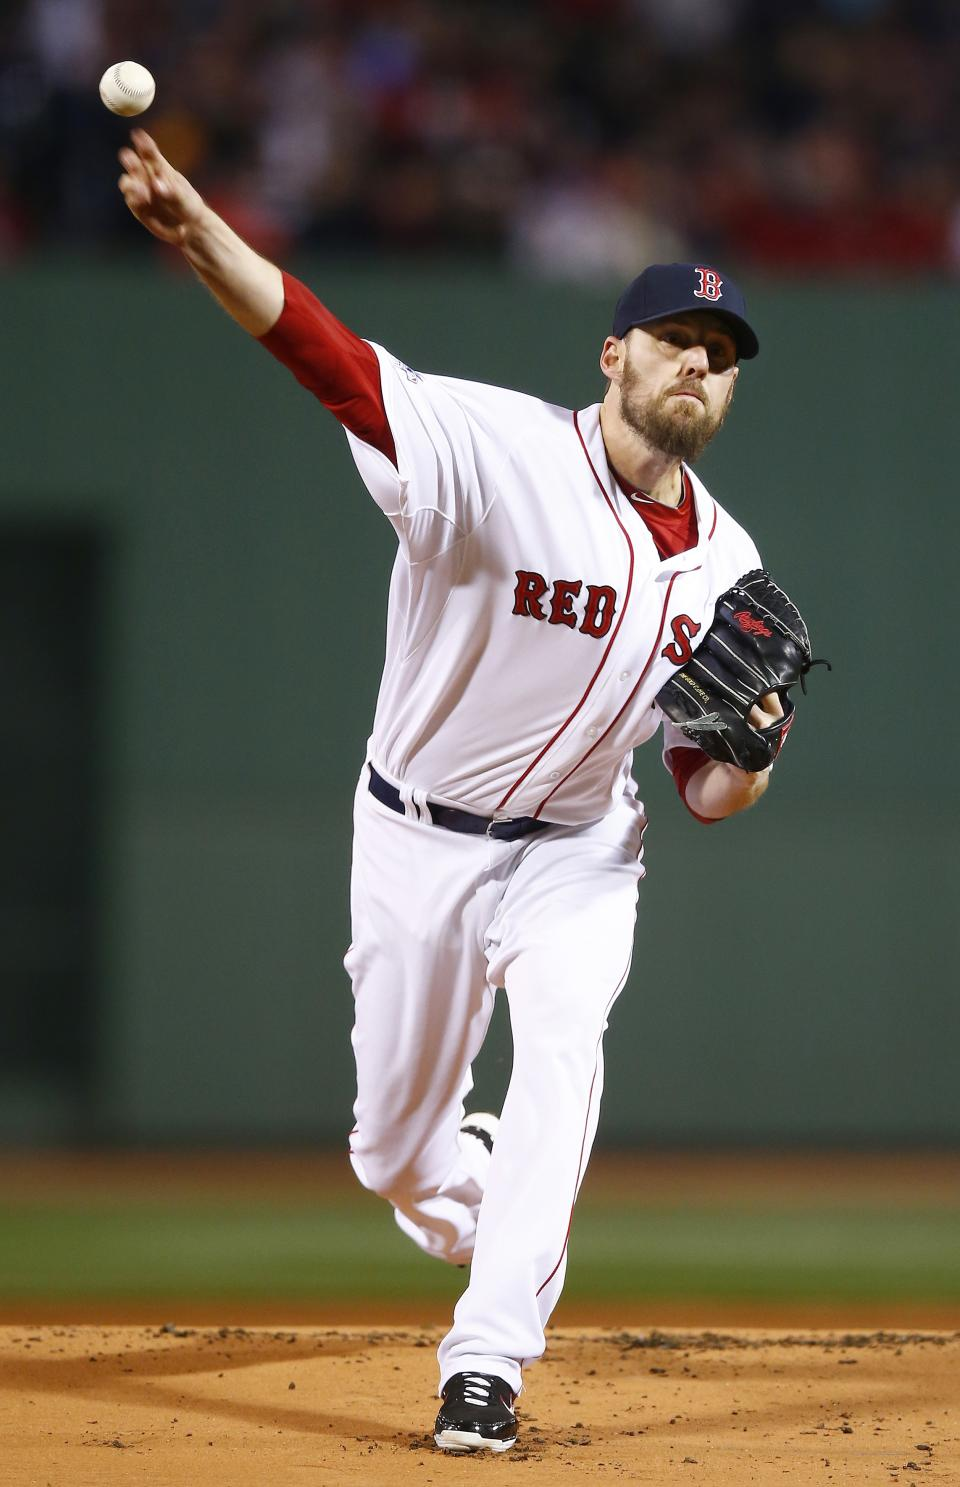 Boston Red Sox starting pitcher John Lackey throws during the first inning of Game 2 of baseball's World Series against the St. Louis Cardinals Thursday, Oct. 24, 2013, in Boston. (AP Photo/Jared Wickerham, Pool)